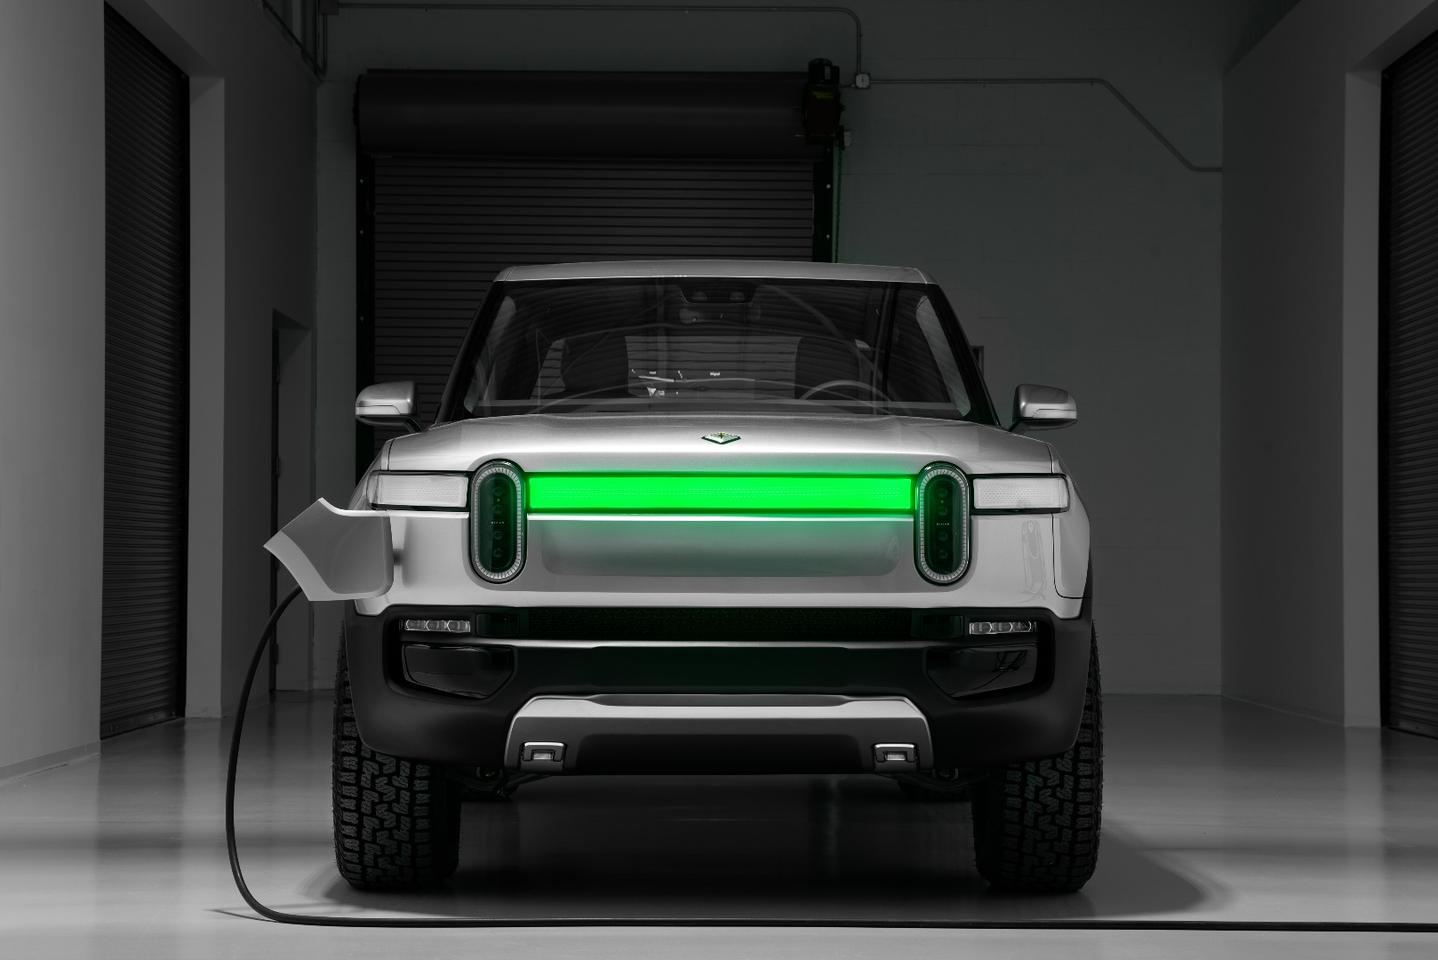 Rivian is building a nationwide network of fast-charging stations that can add as much as 140 miles (225 km) worth of juice in as little as 20 minutes